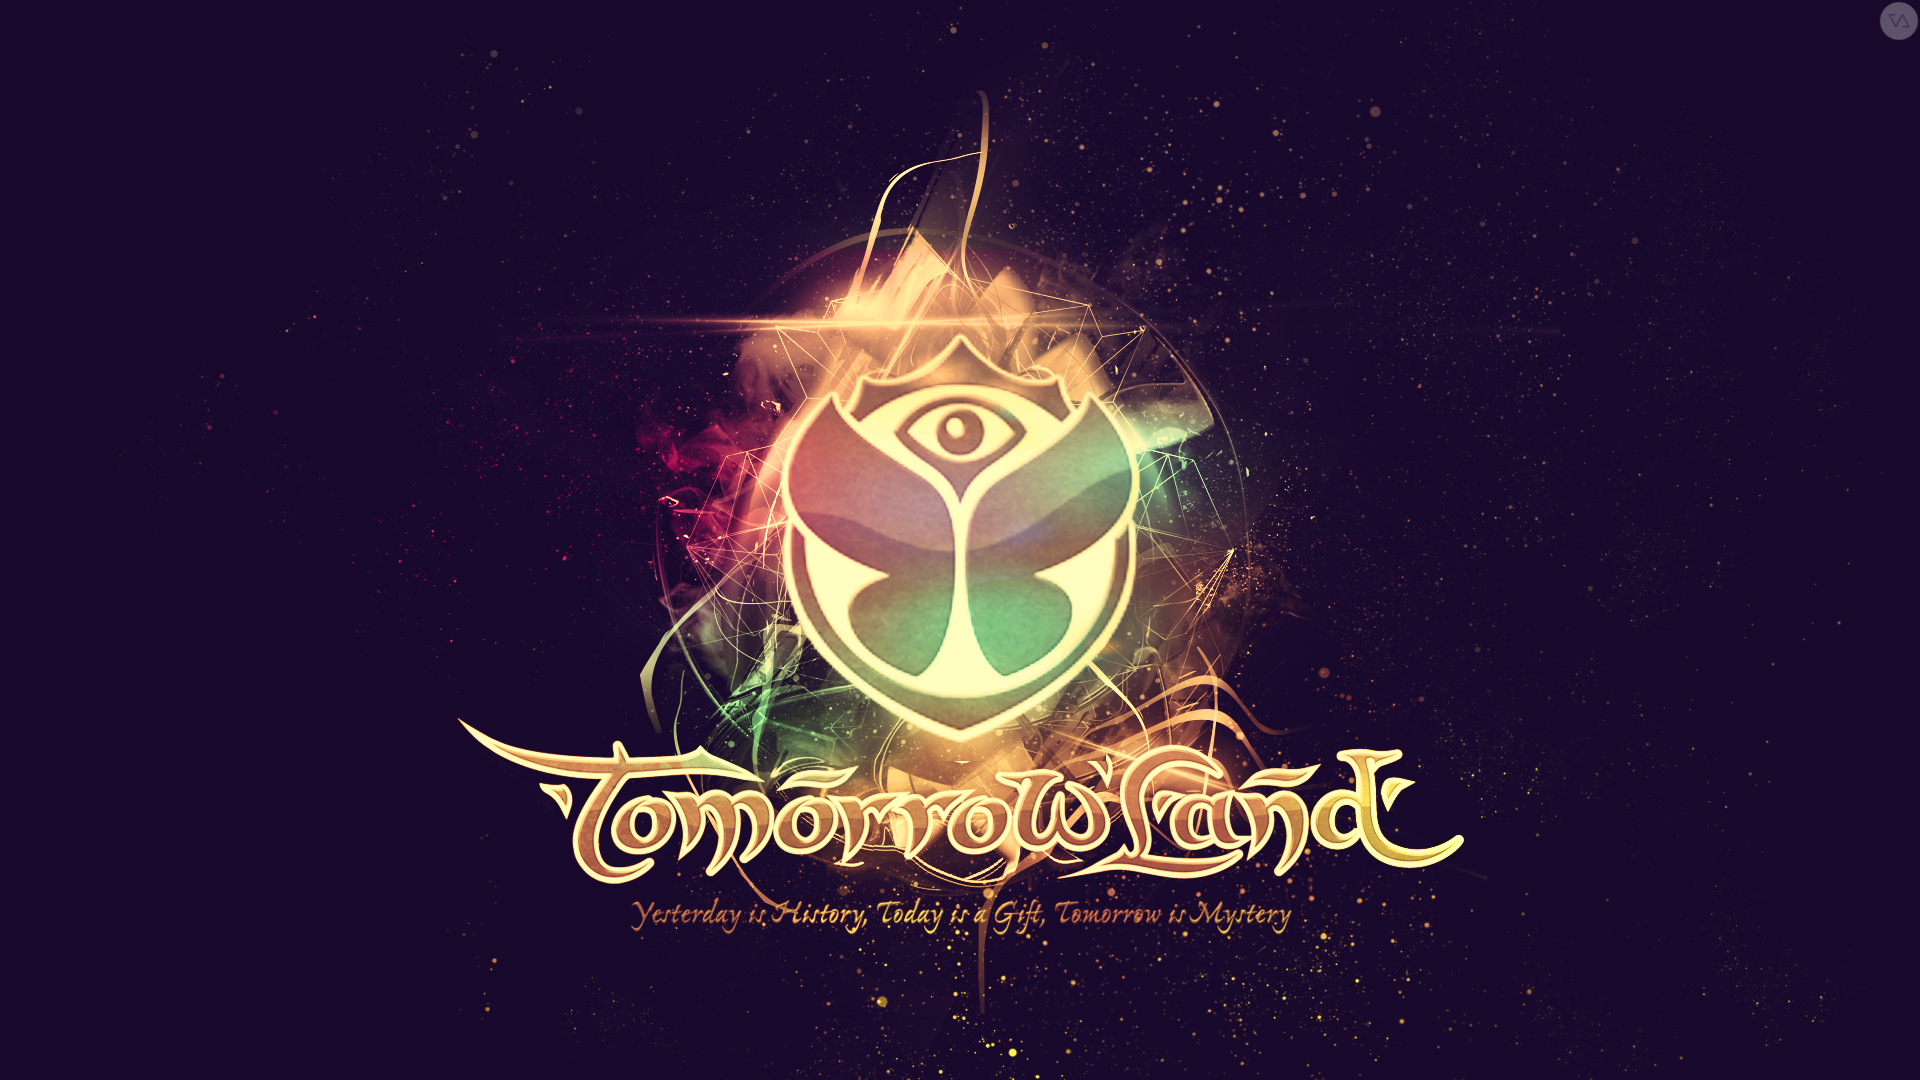 Tomorrowland Tickets Tomorrowland Announces Ticket Information By The Wavs